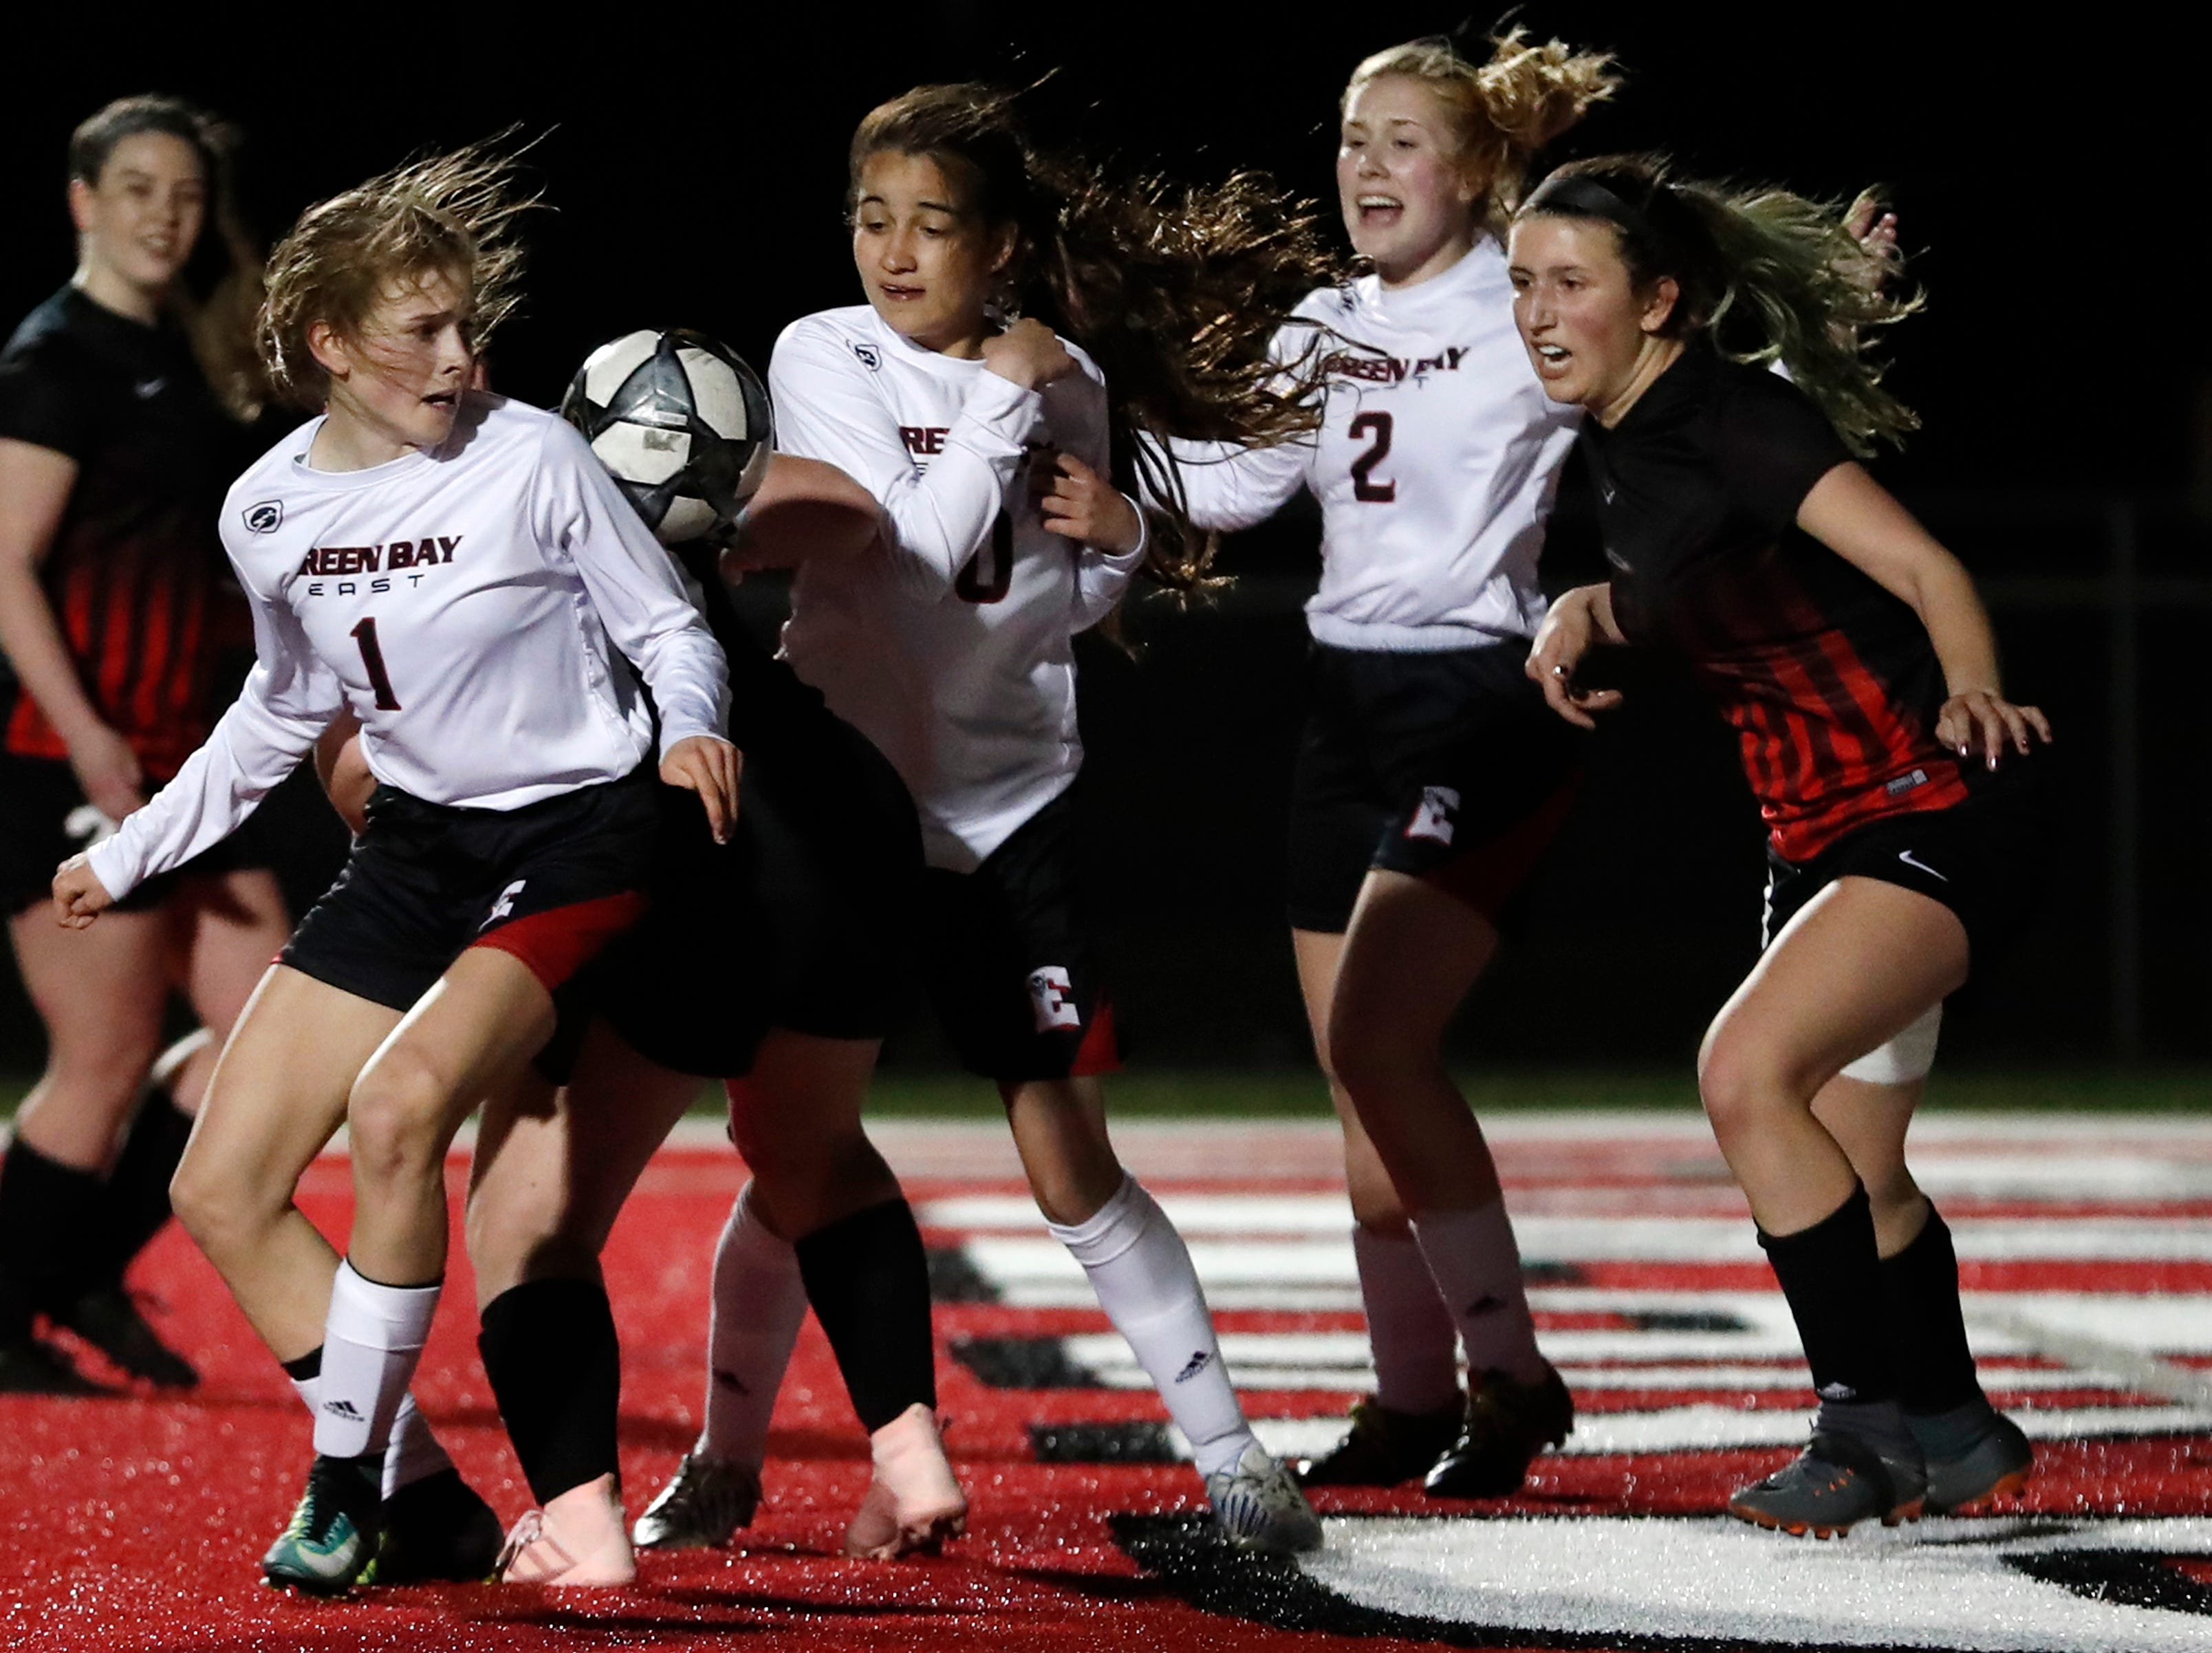 Green Bay East High School's Ellena Gallegas tries to turn toward the ball and face Hortonville High School's goal  Monday, April 8, 2019, in Hortonville, Wis. Danny Damiani/USA TODAY NETWORK-Wisconsin